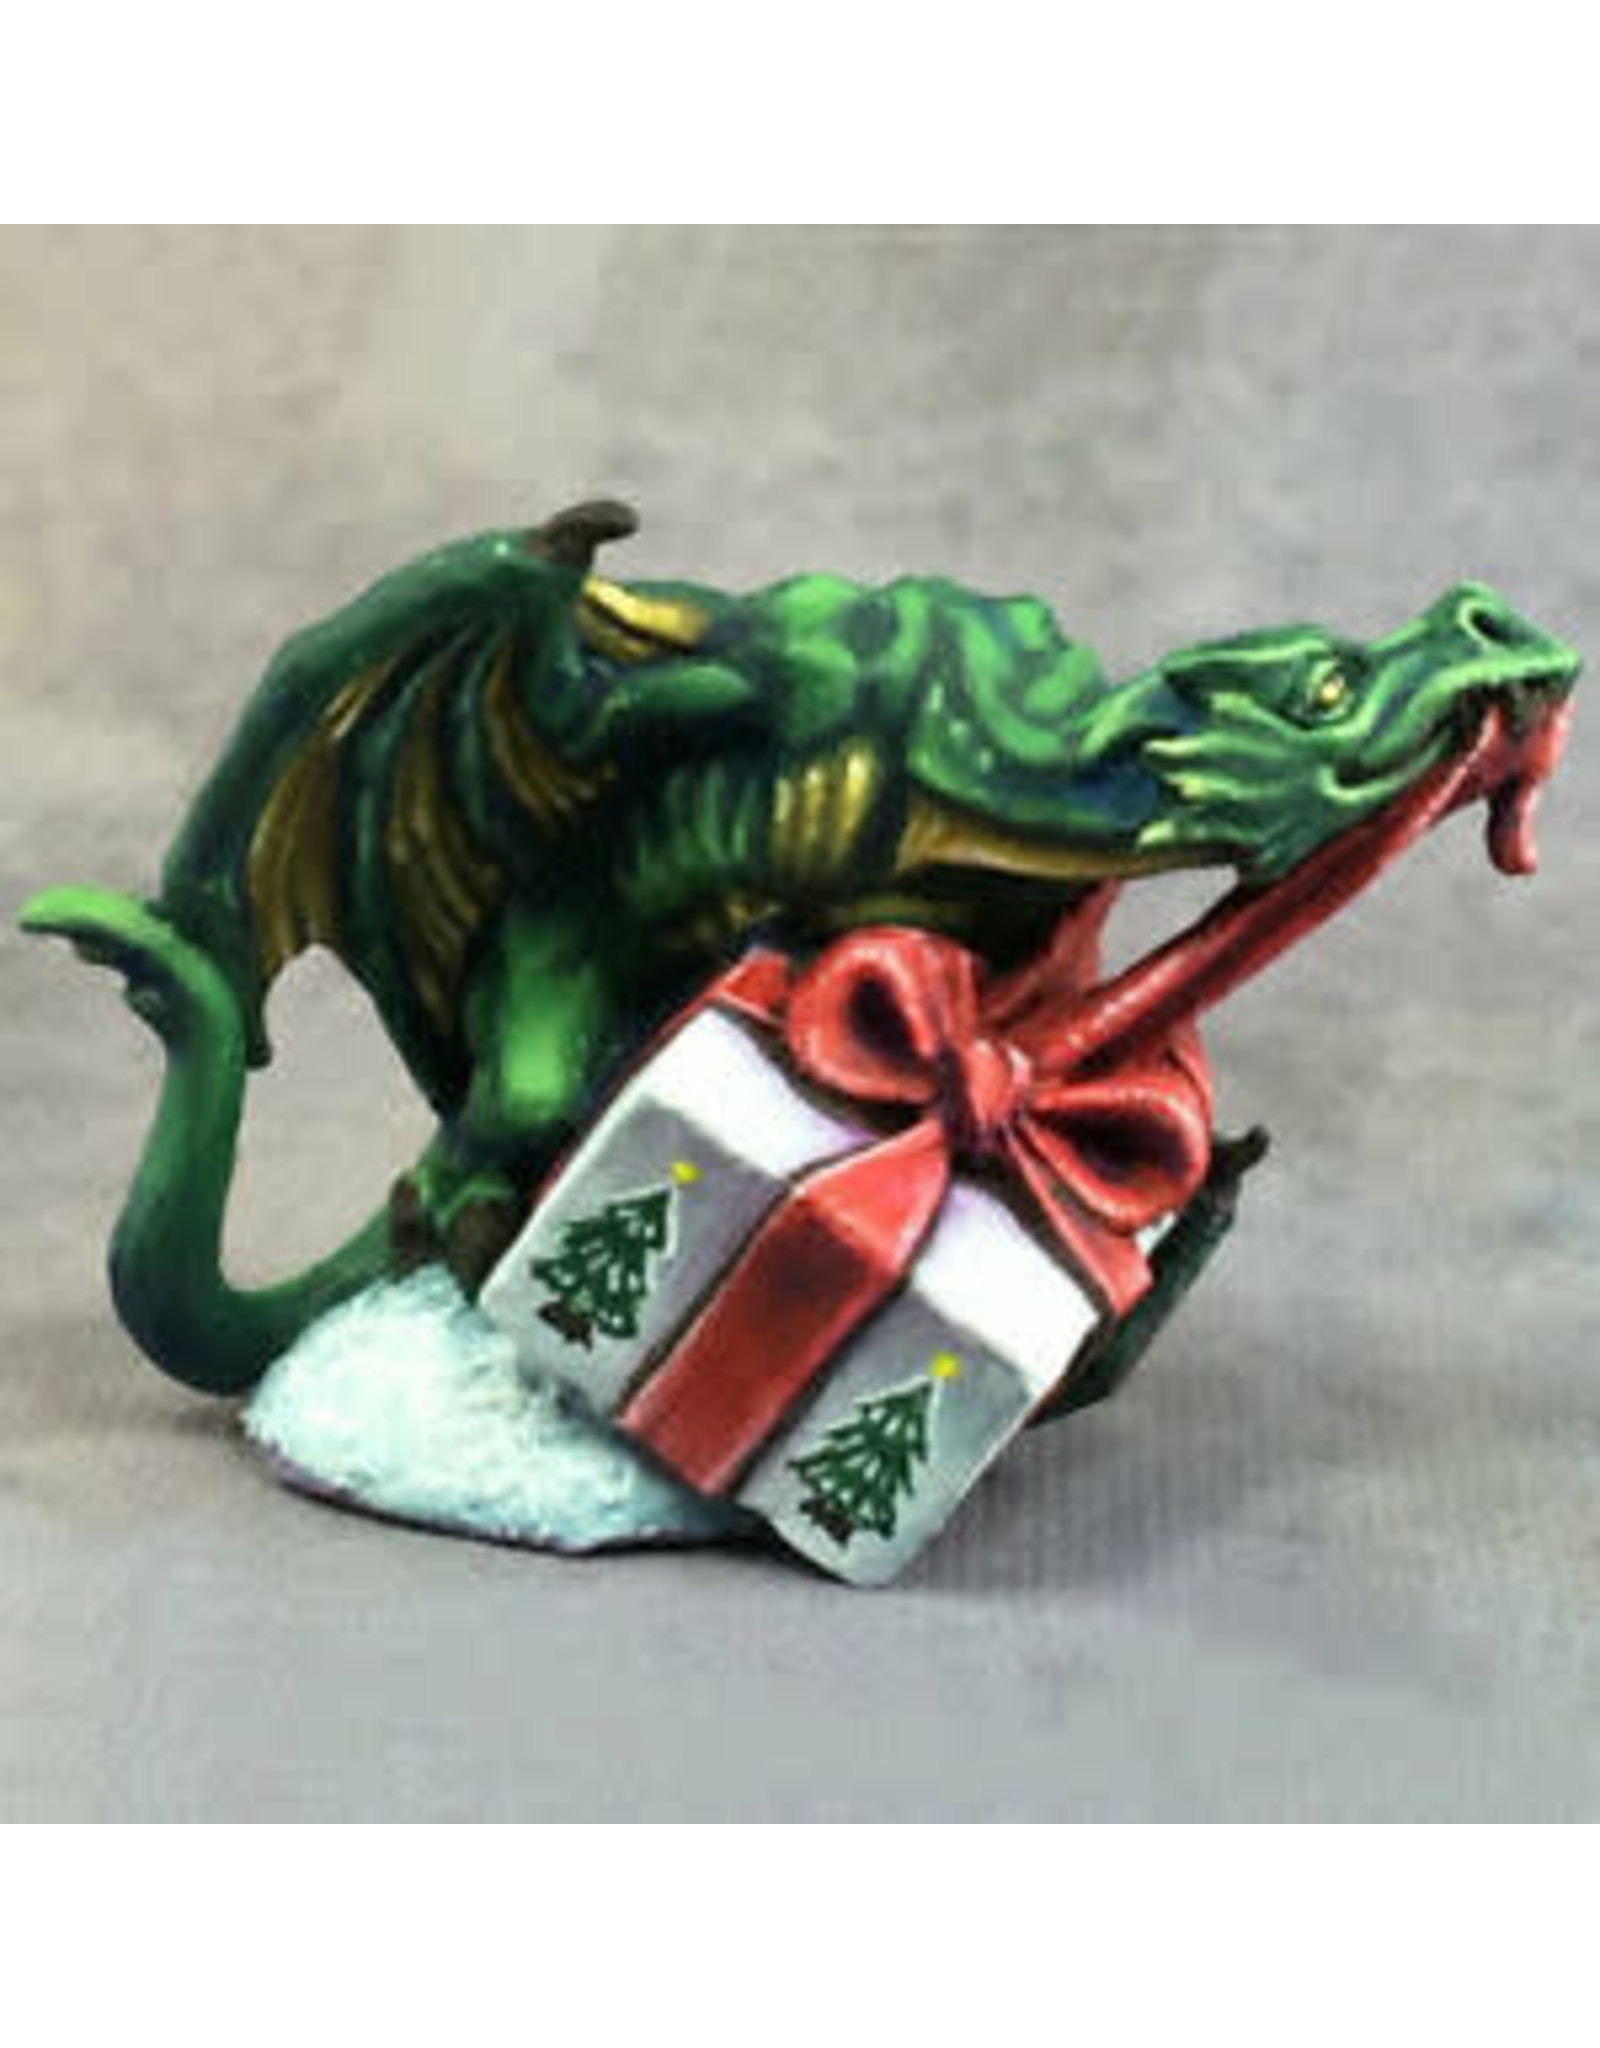 Reaper Reaper: 12 Days: Wrapping Dragon